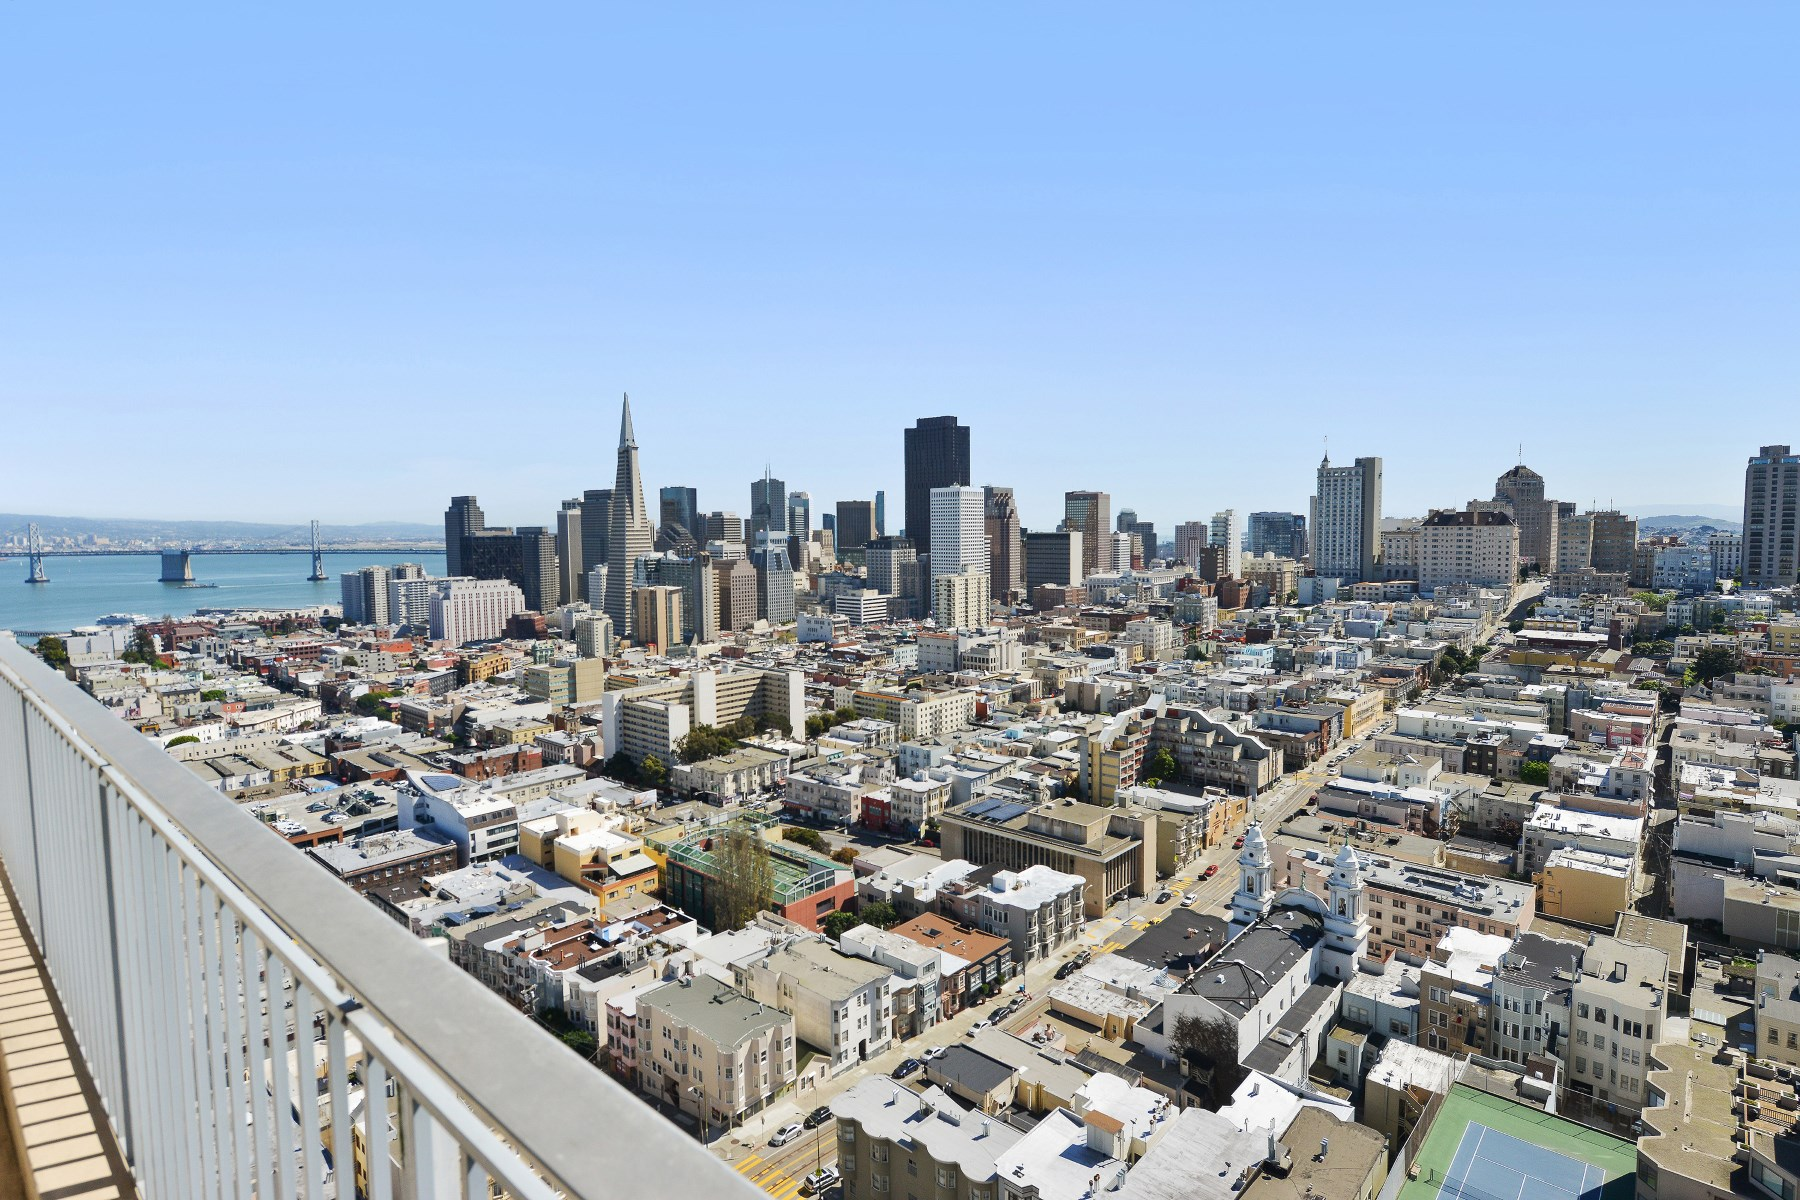 Co-op for Sale at Russian Hill View Cooperative 1750 Taylor St Unit 1402 Russian Hill, San Francisco, California, 94133 United States